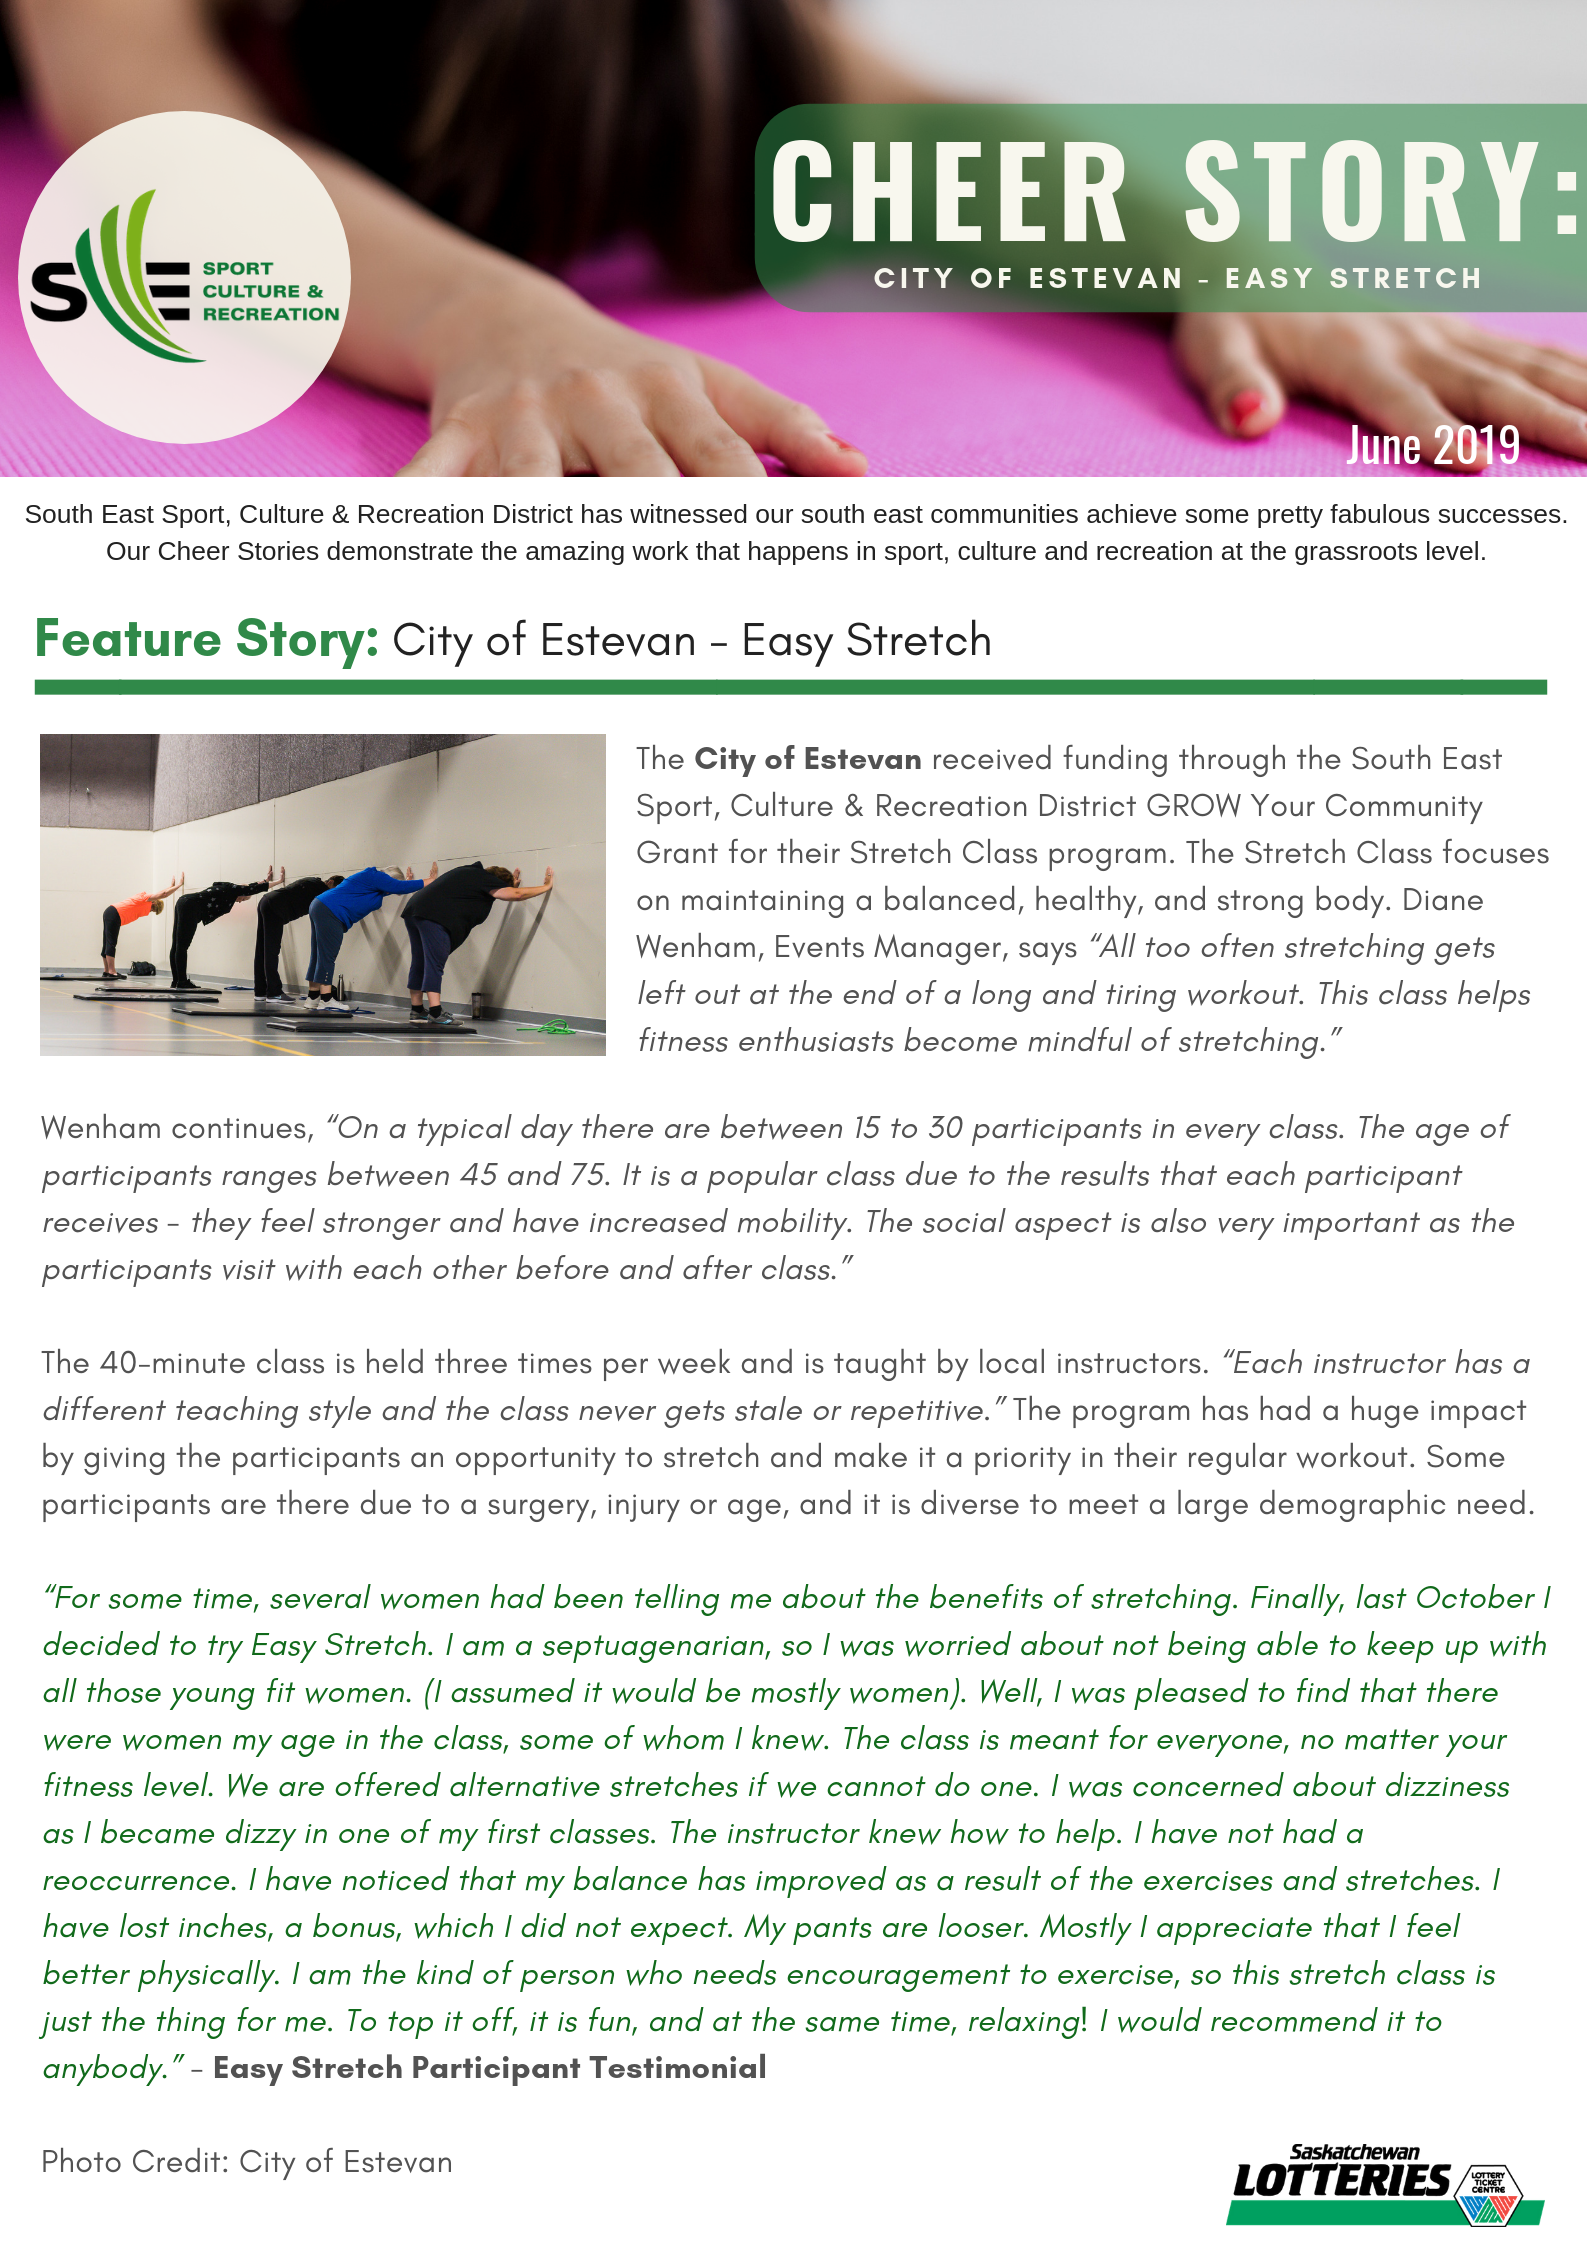 Cheer Story: City of Estevan - Easy Stretch - Image 1